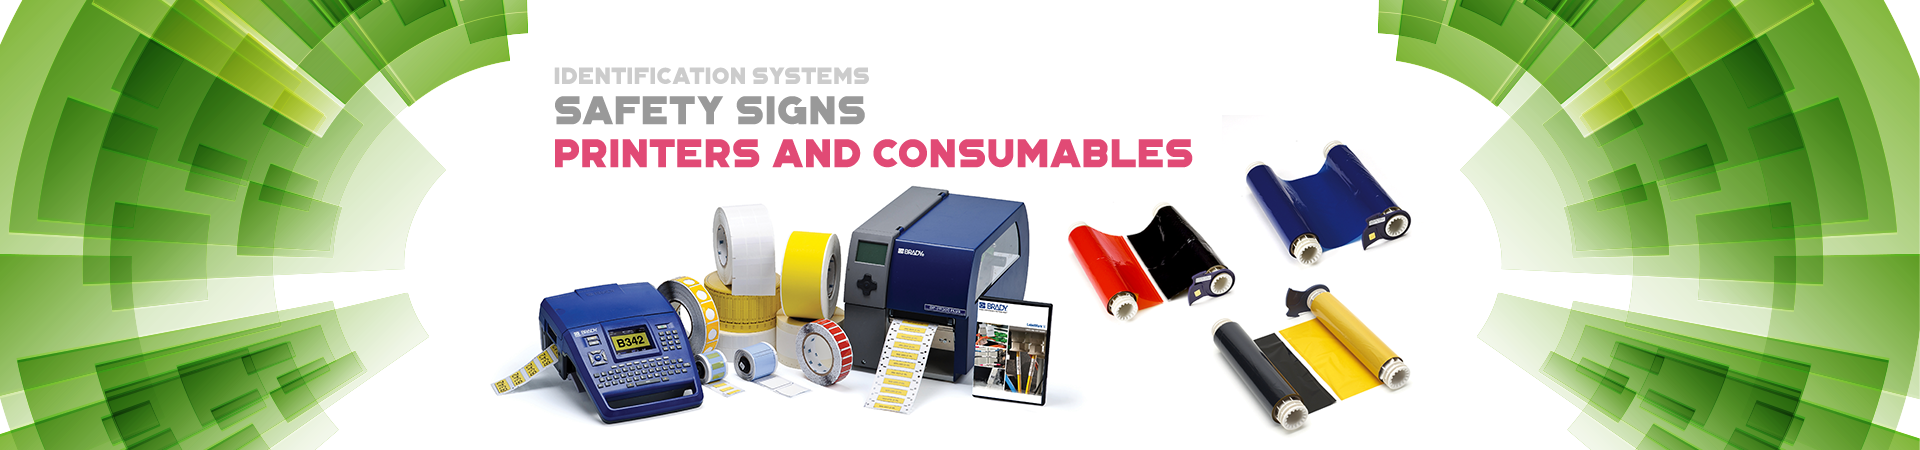 printers consumables